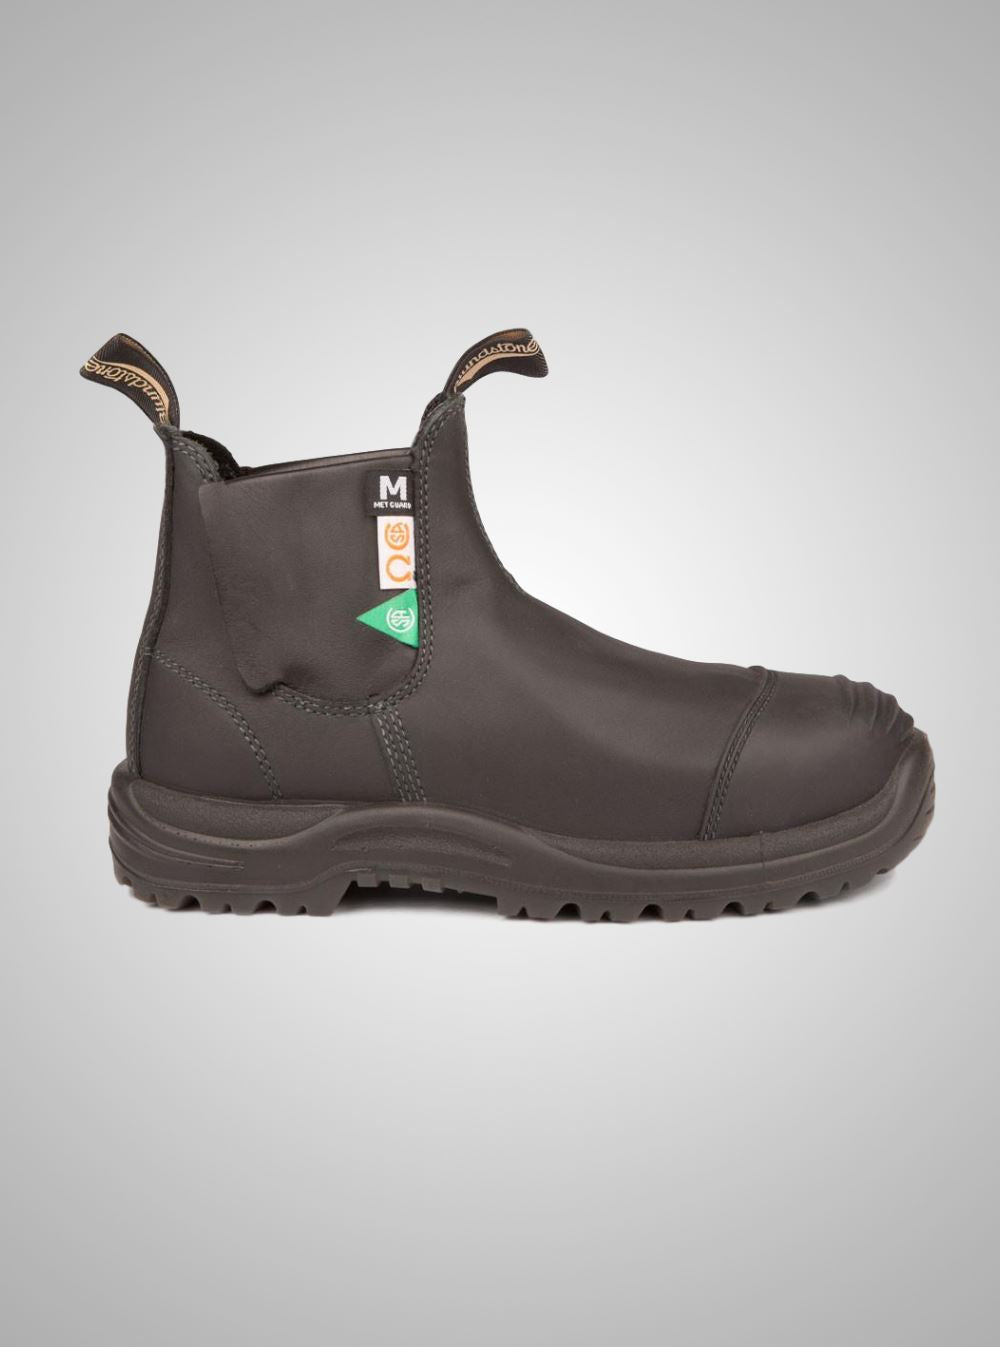 Blundstone 165 - The Greenpatch Met Guard in Black